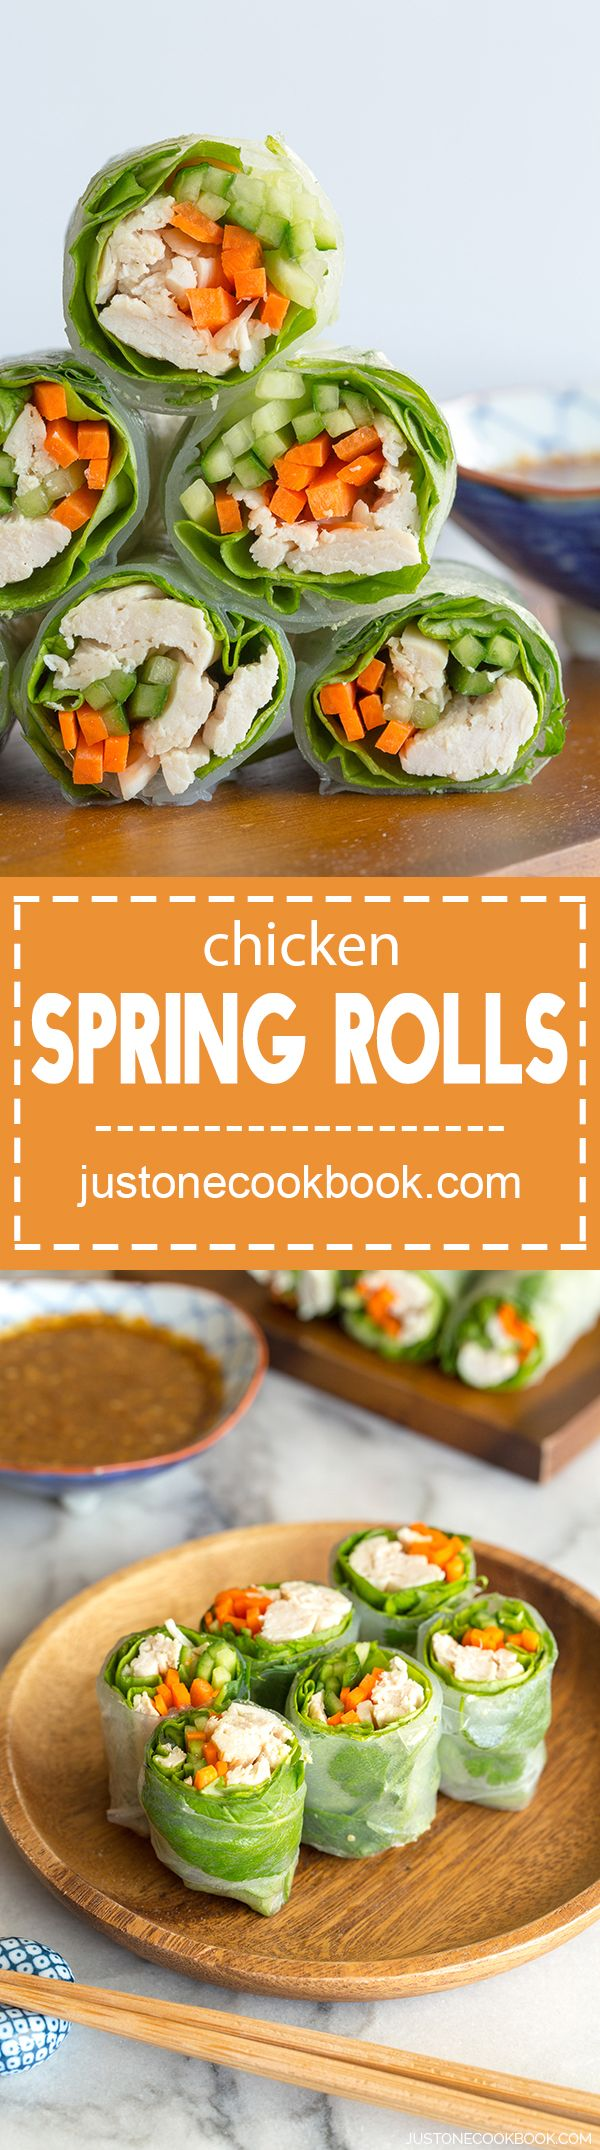 Chicken Spring Rolls (棒棒鶏の生春巻き)  |  Easy Japanese Recipes at JustOneCookbook.com